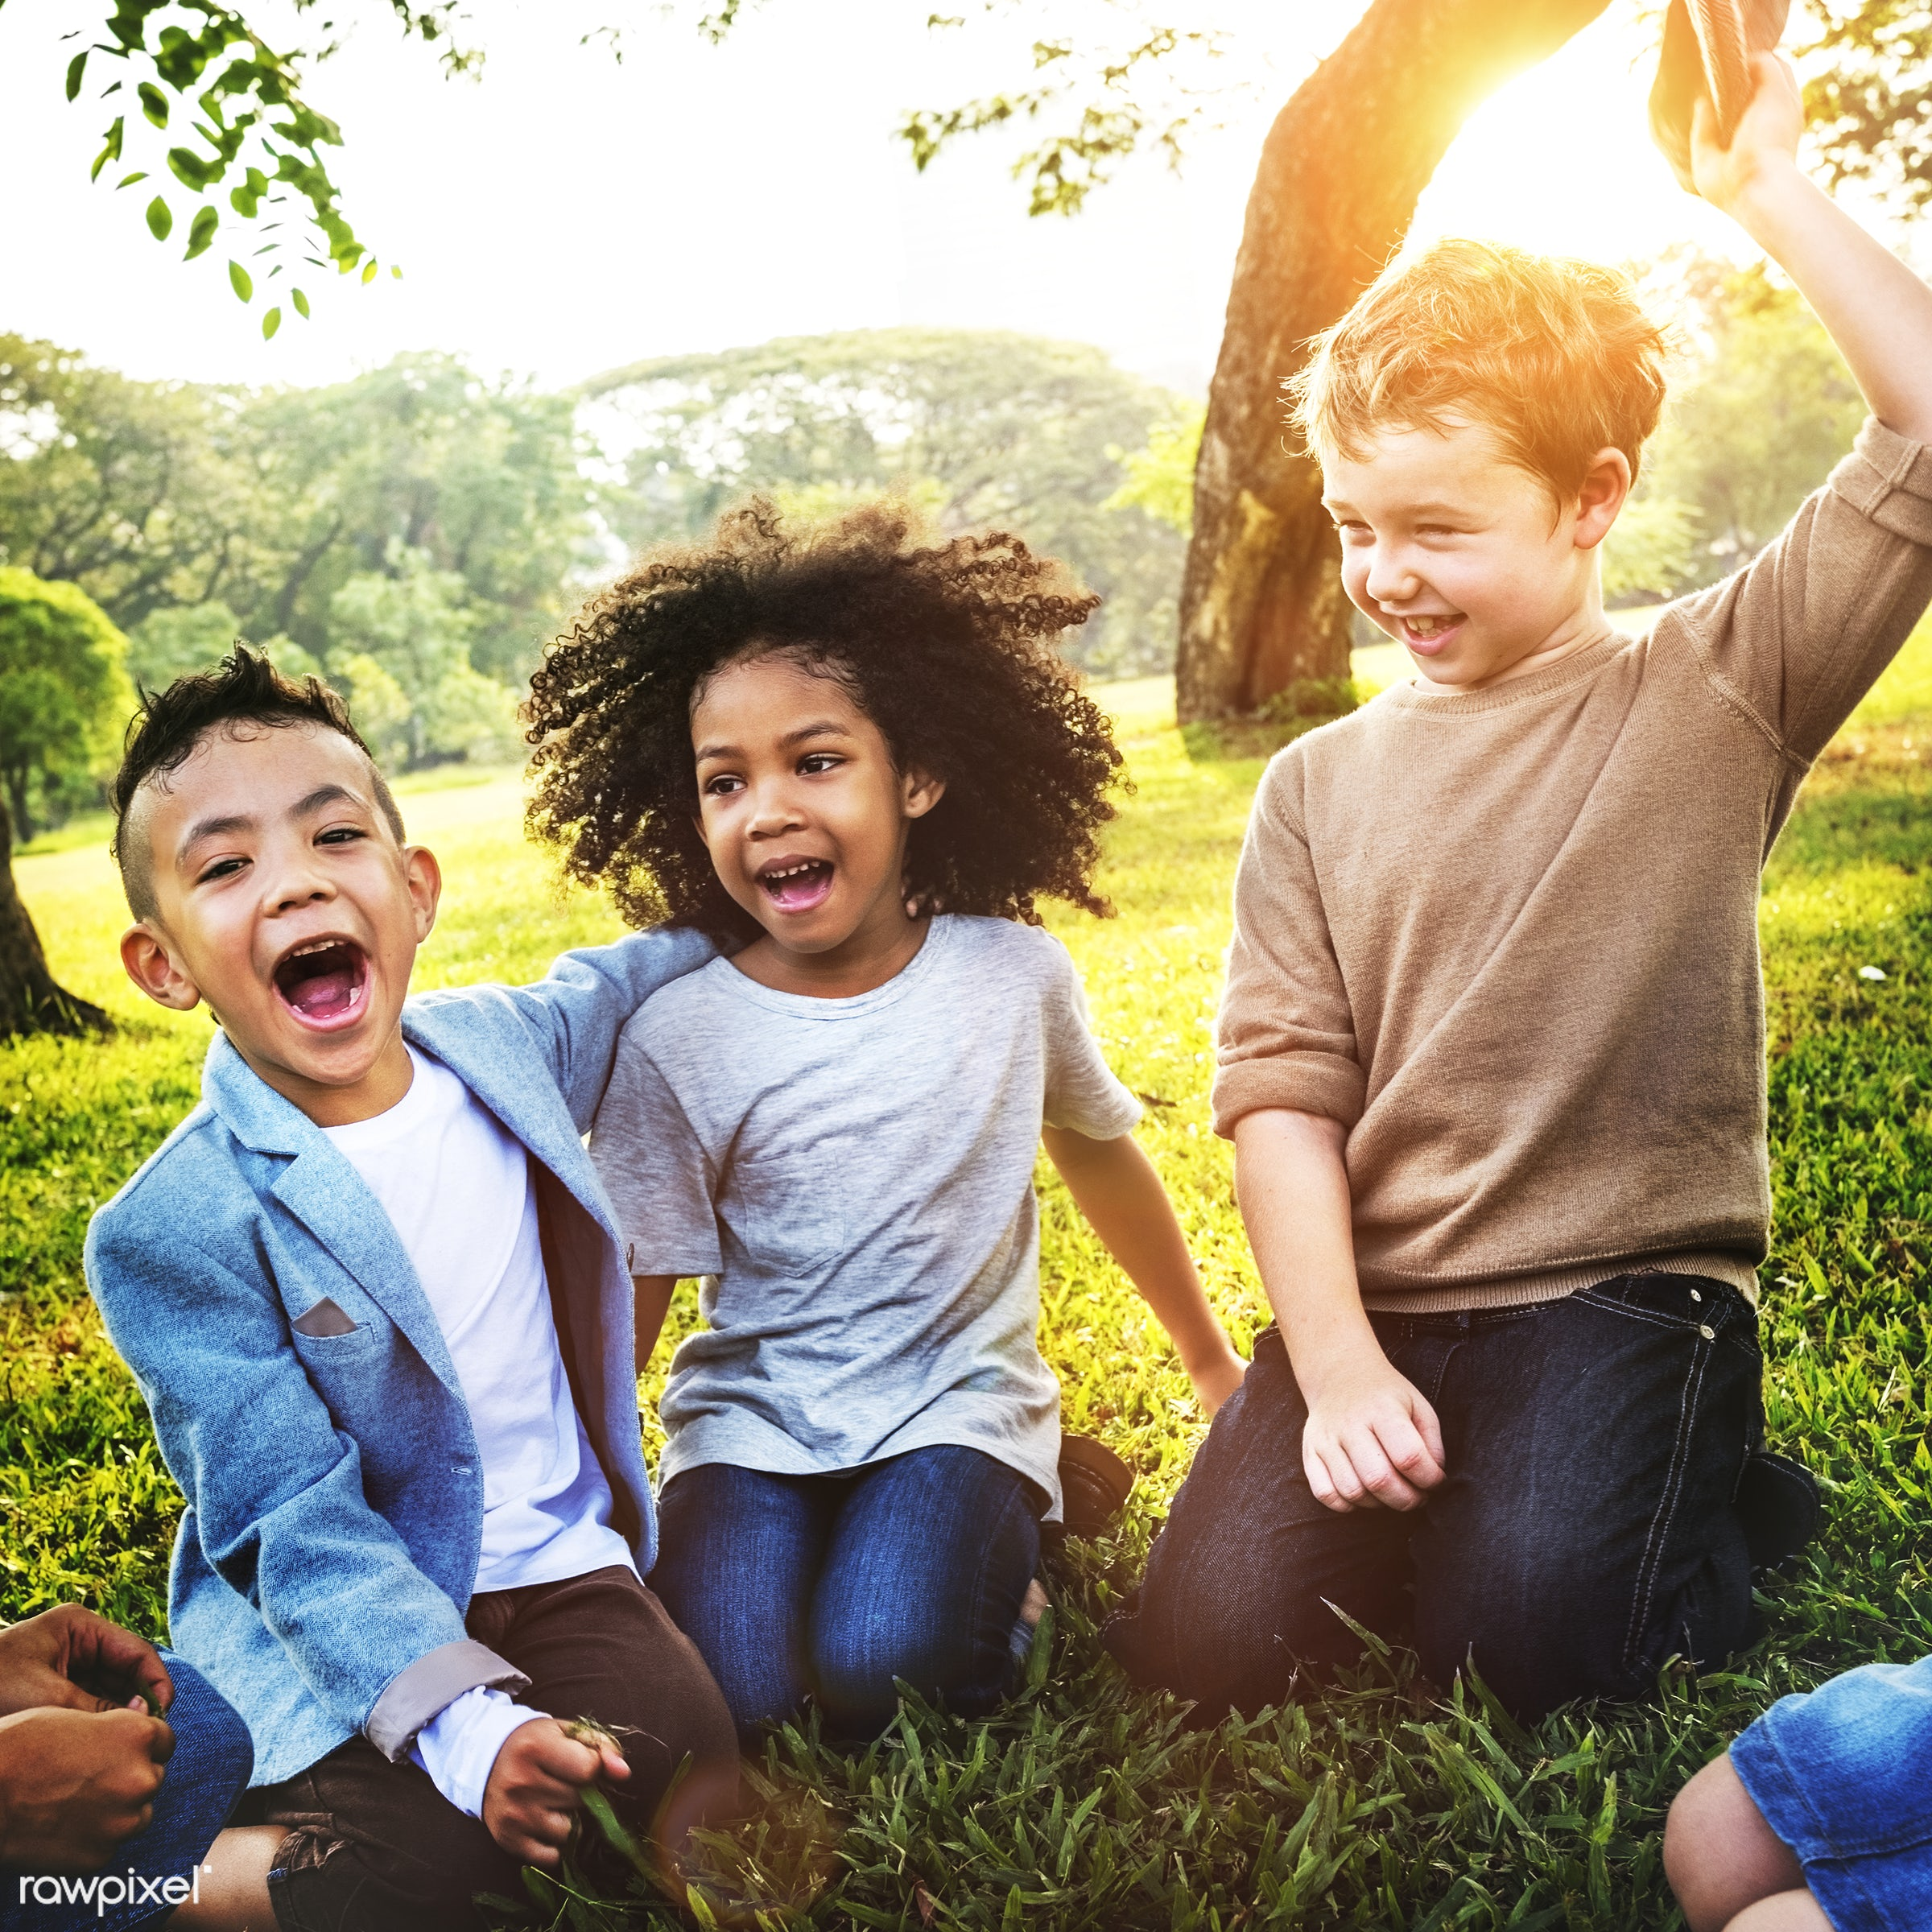 activities, adorable, african descent, asian ethnicity, bonding, boys, cheerful, child, childhood, children, colorful, cute...